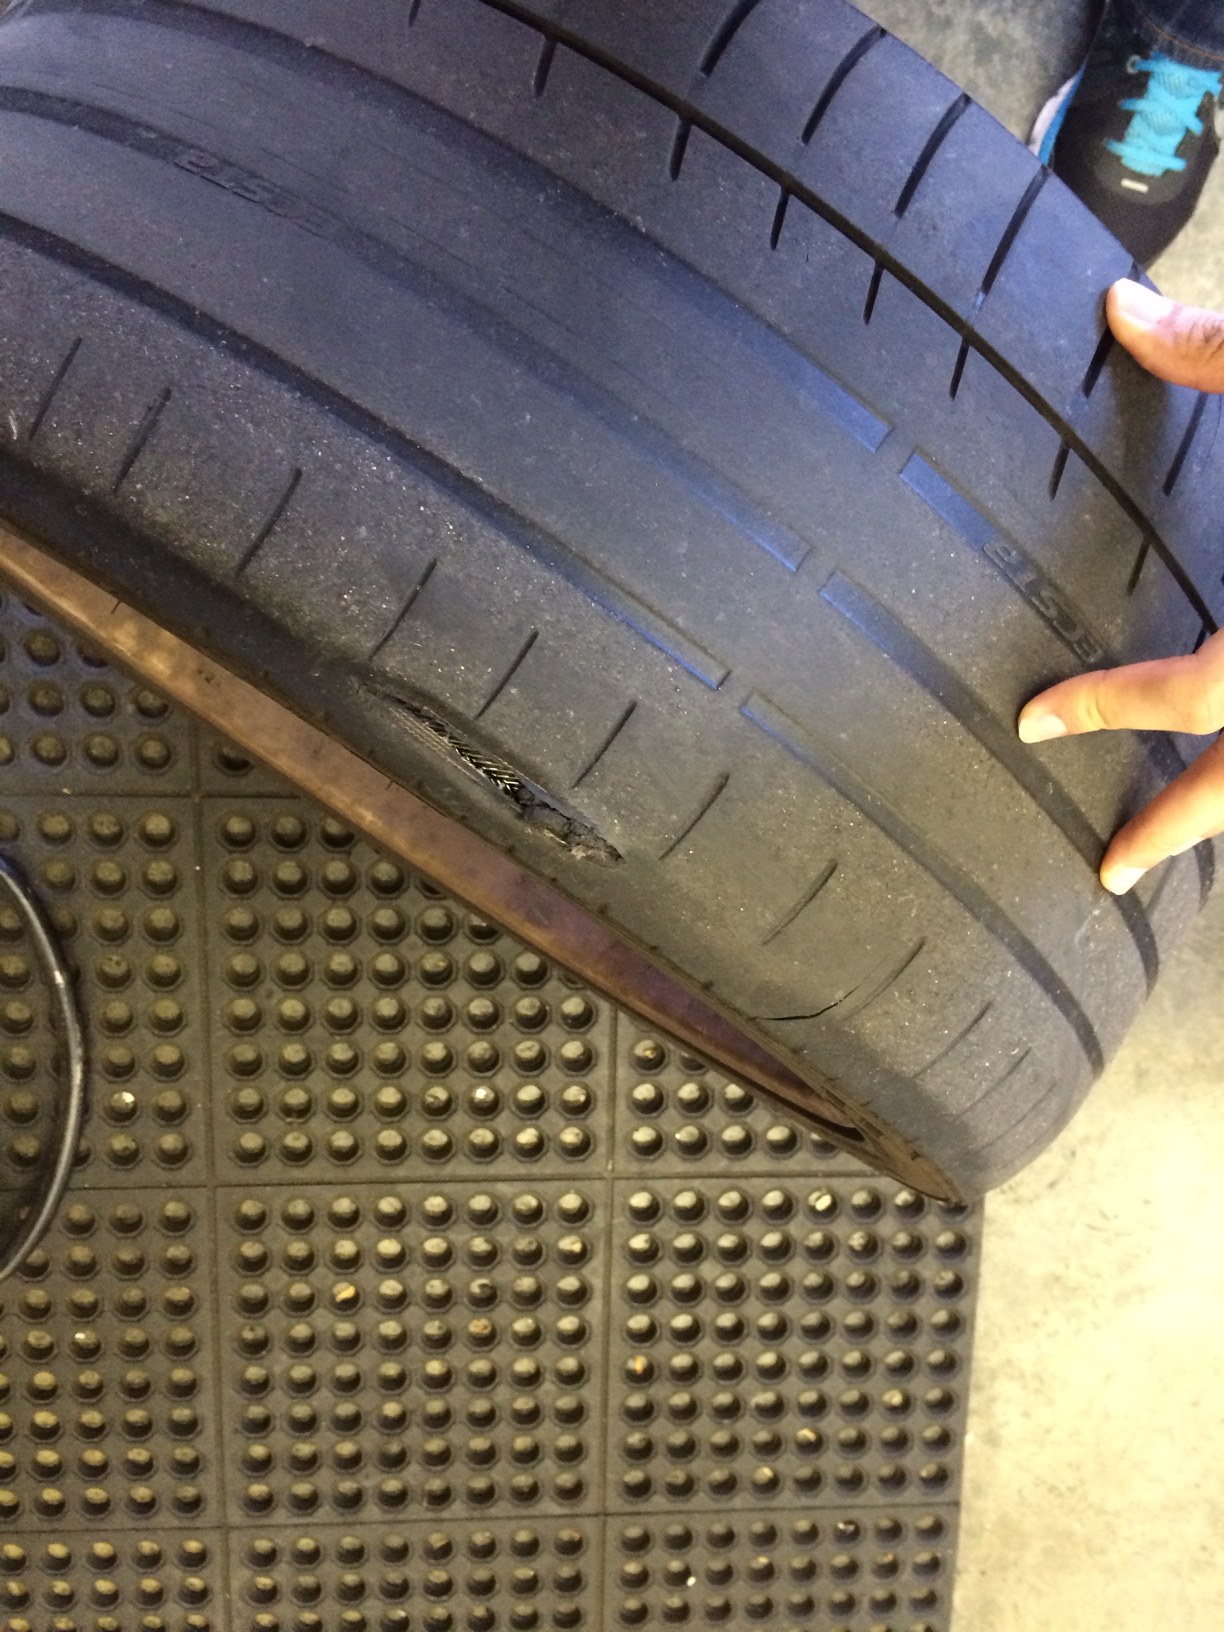 i have been an audi fan for several years  i recently got my first bmw e39   it got a suspension issue  i would like to seek advice on this